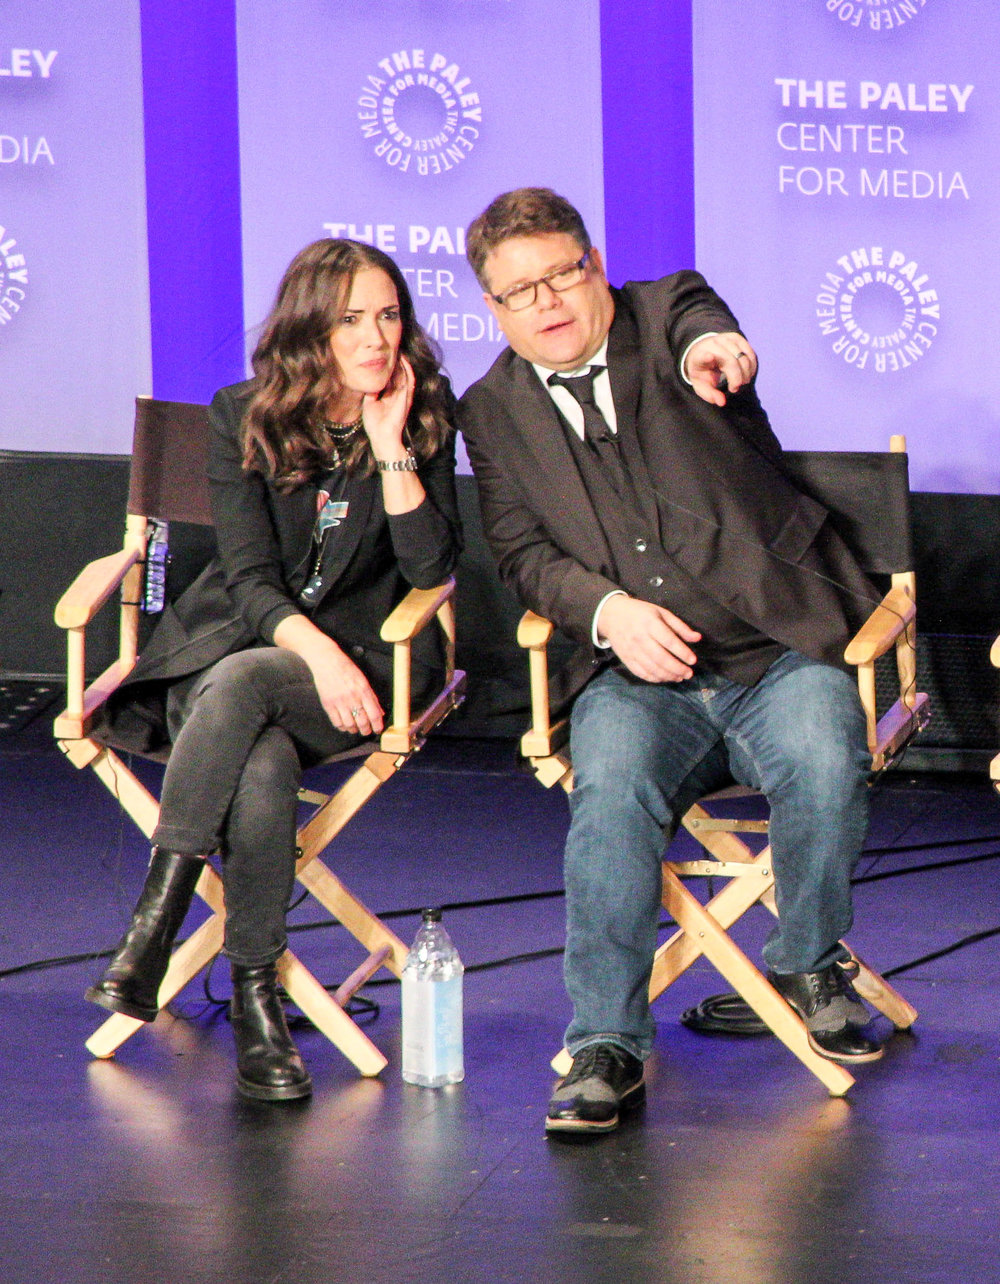 from left to right: Winona Ryder (Joyce Byers), and Sean Astin (Bob Newby)